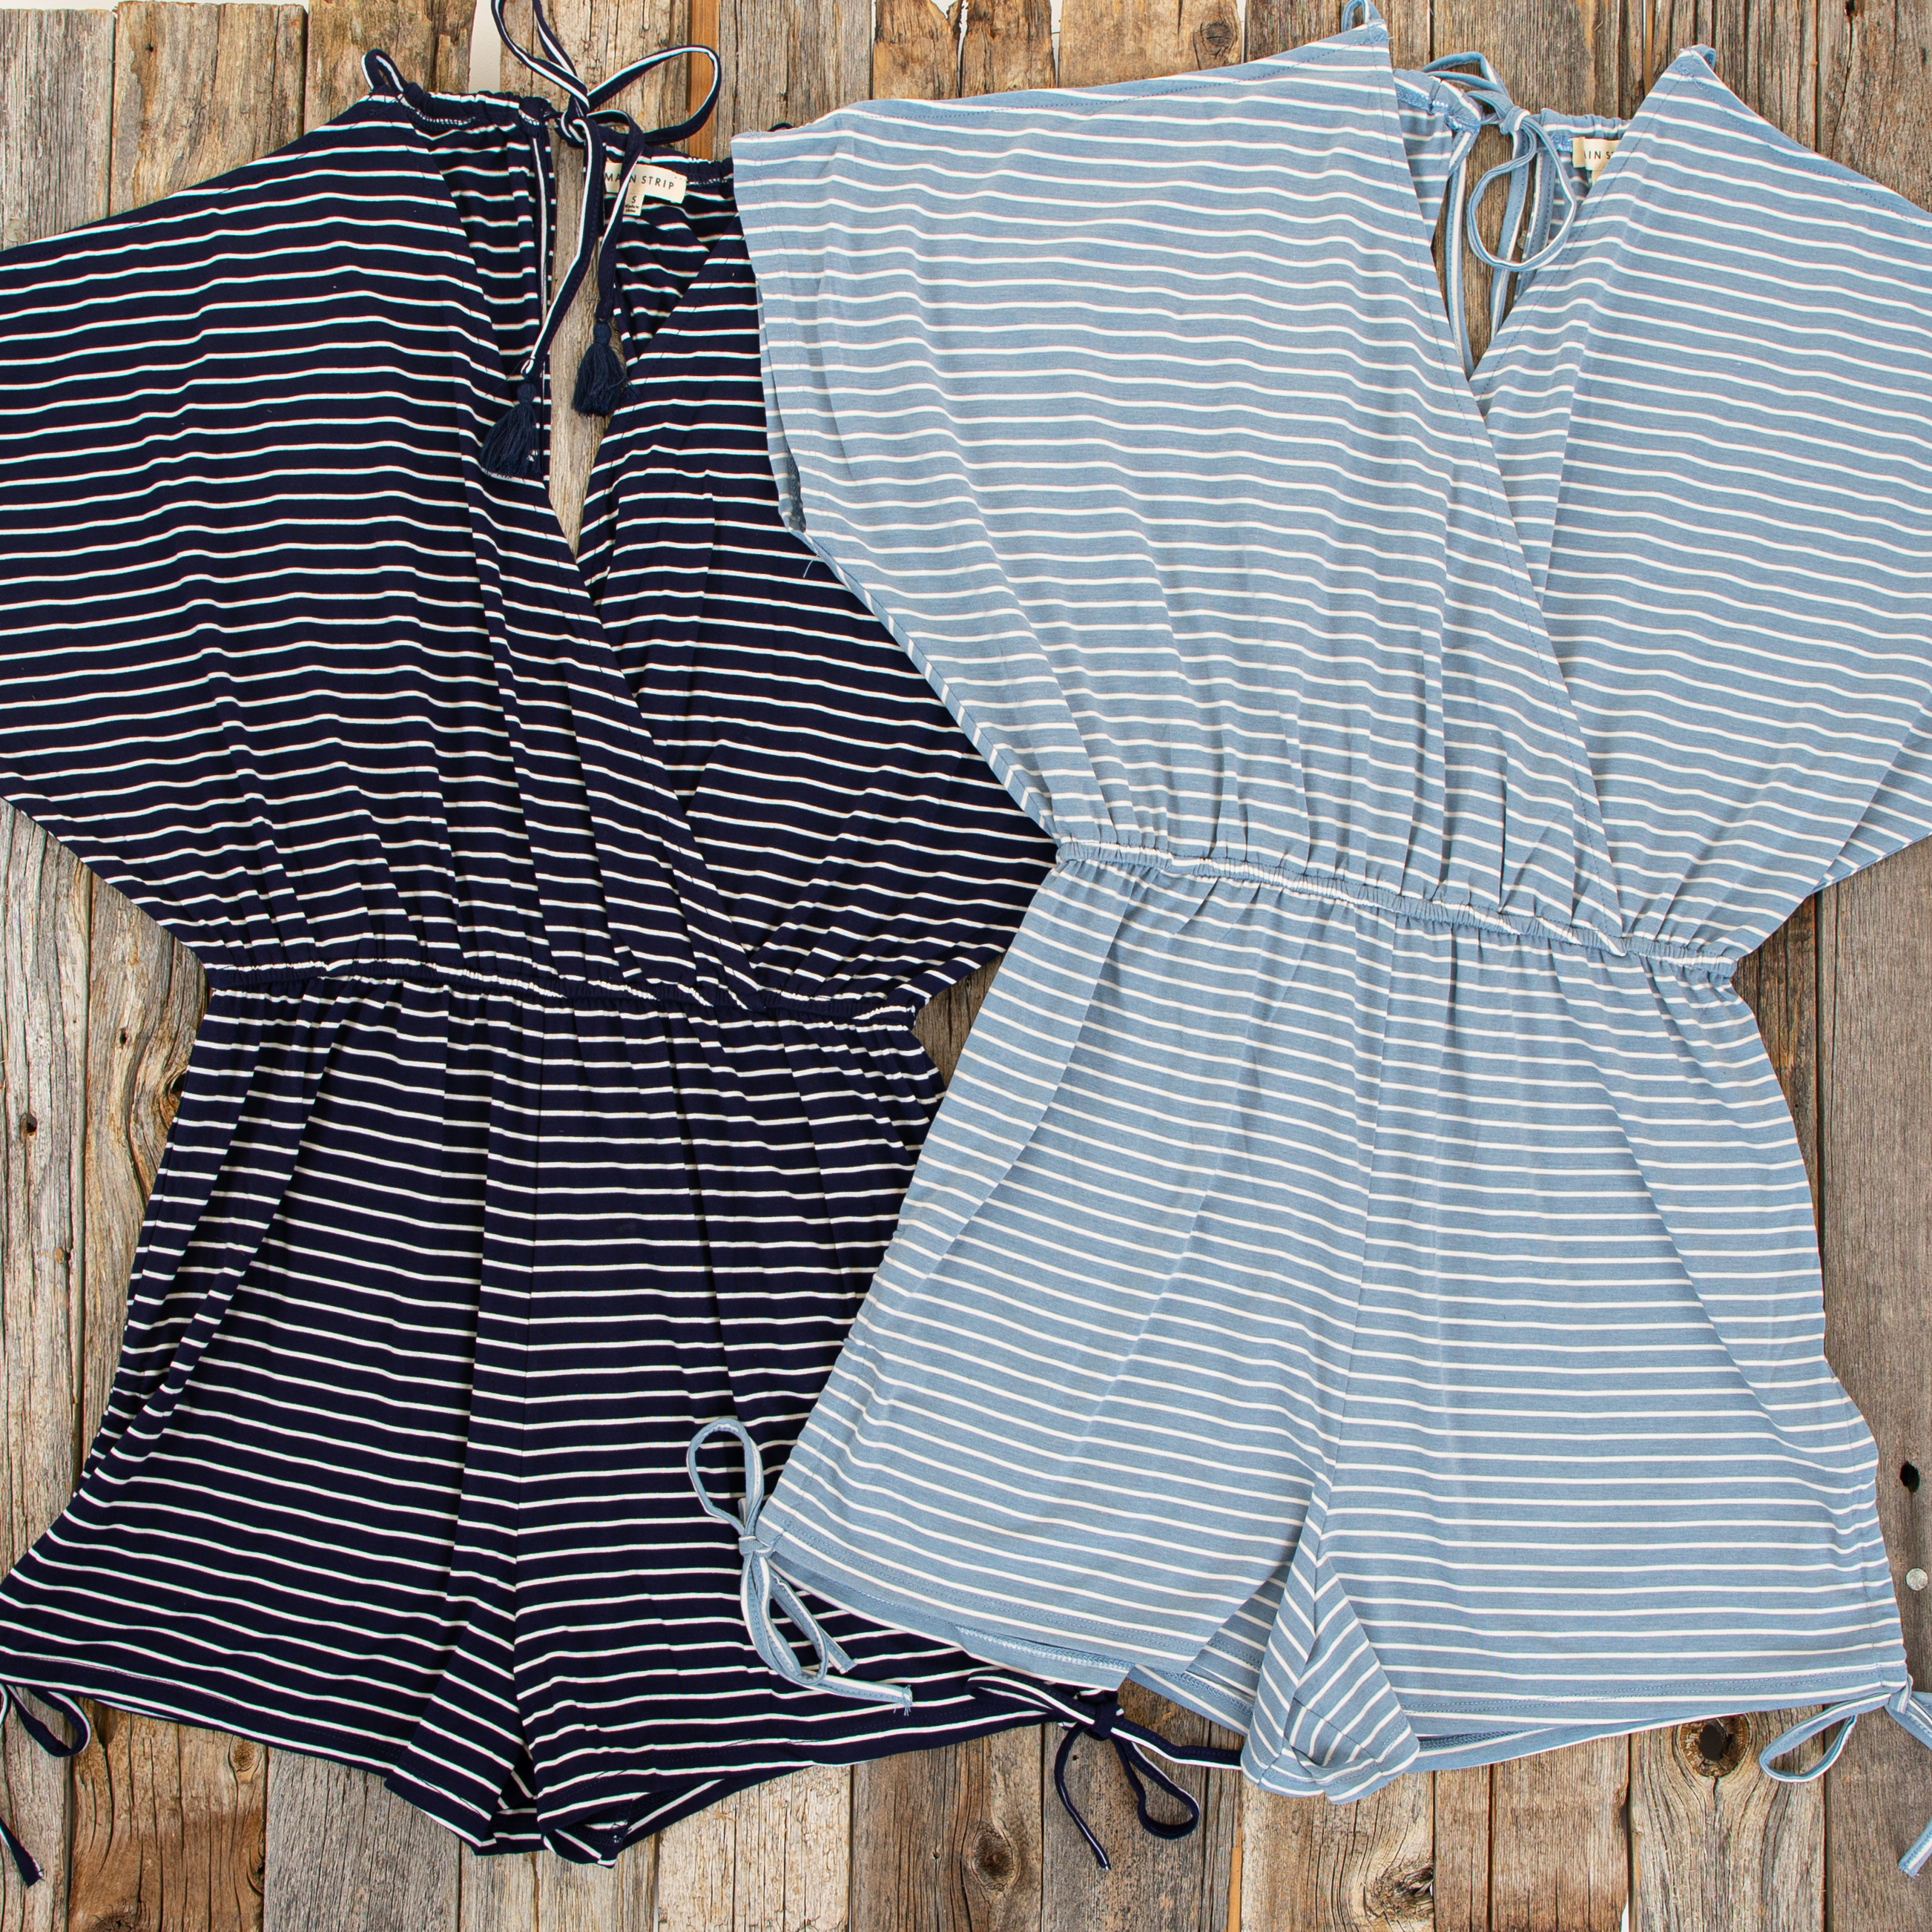 Slate Blue and White Striped Knit Romper with Drawstring